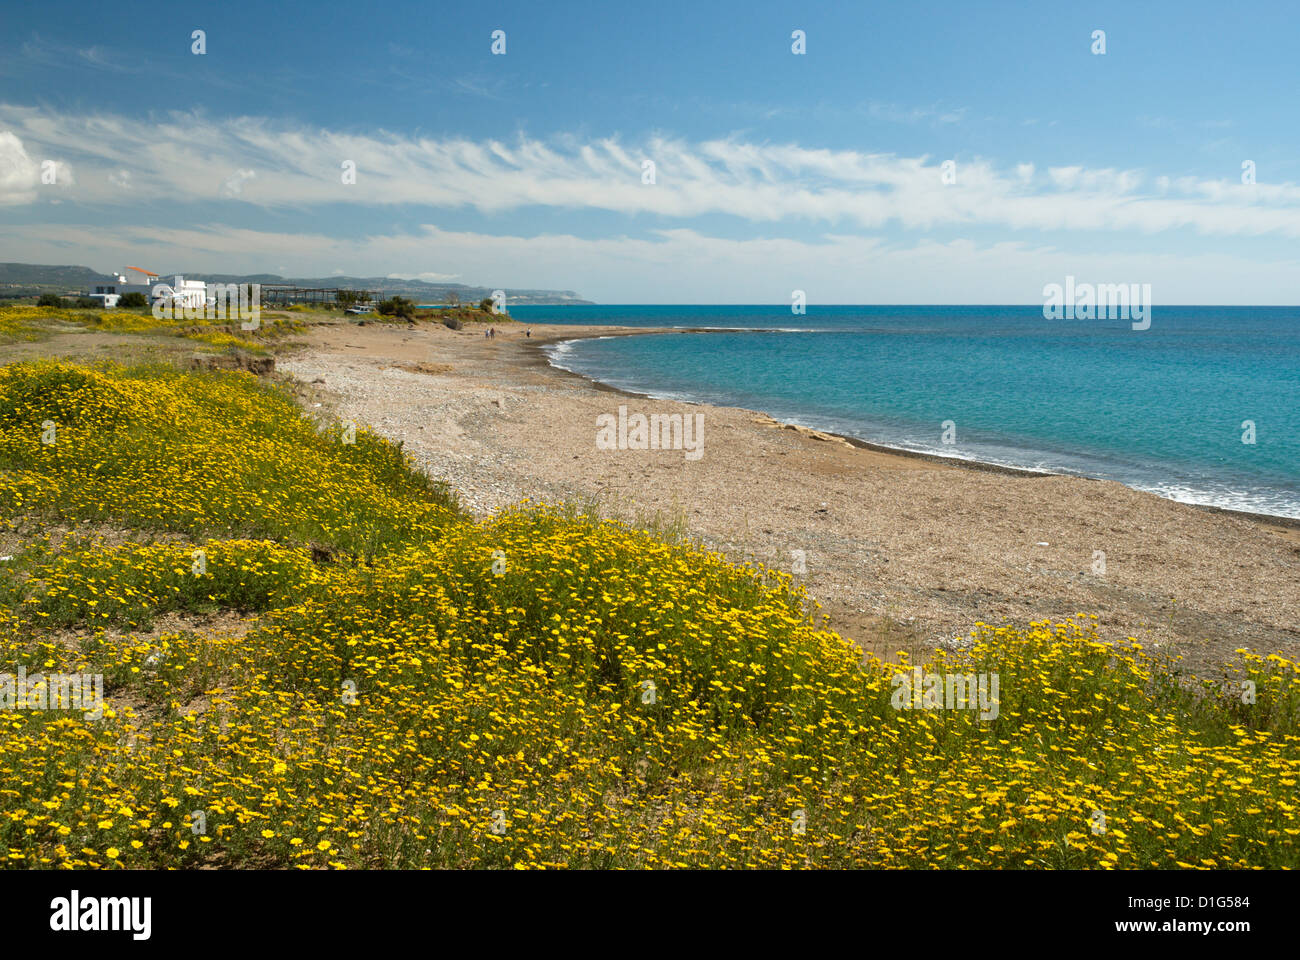 Secluded beach in spring, near Paphos, Cyprus, Mediterranean, Europe - Stock Image